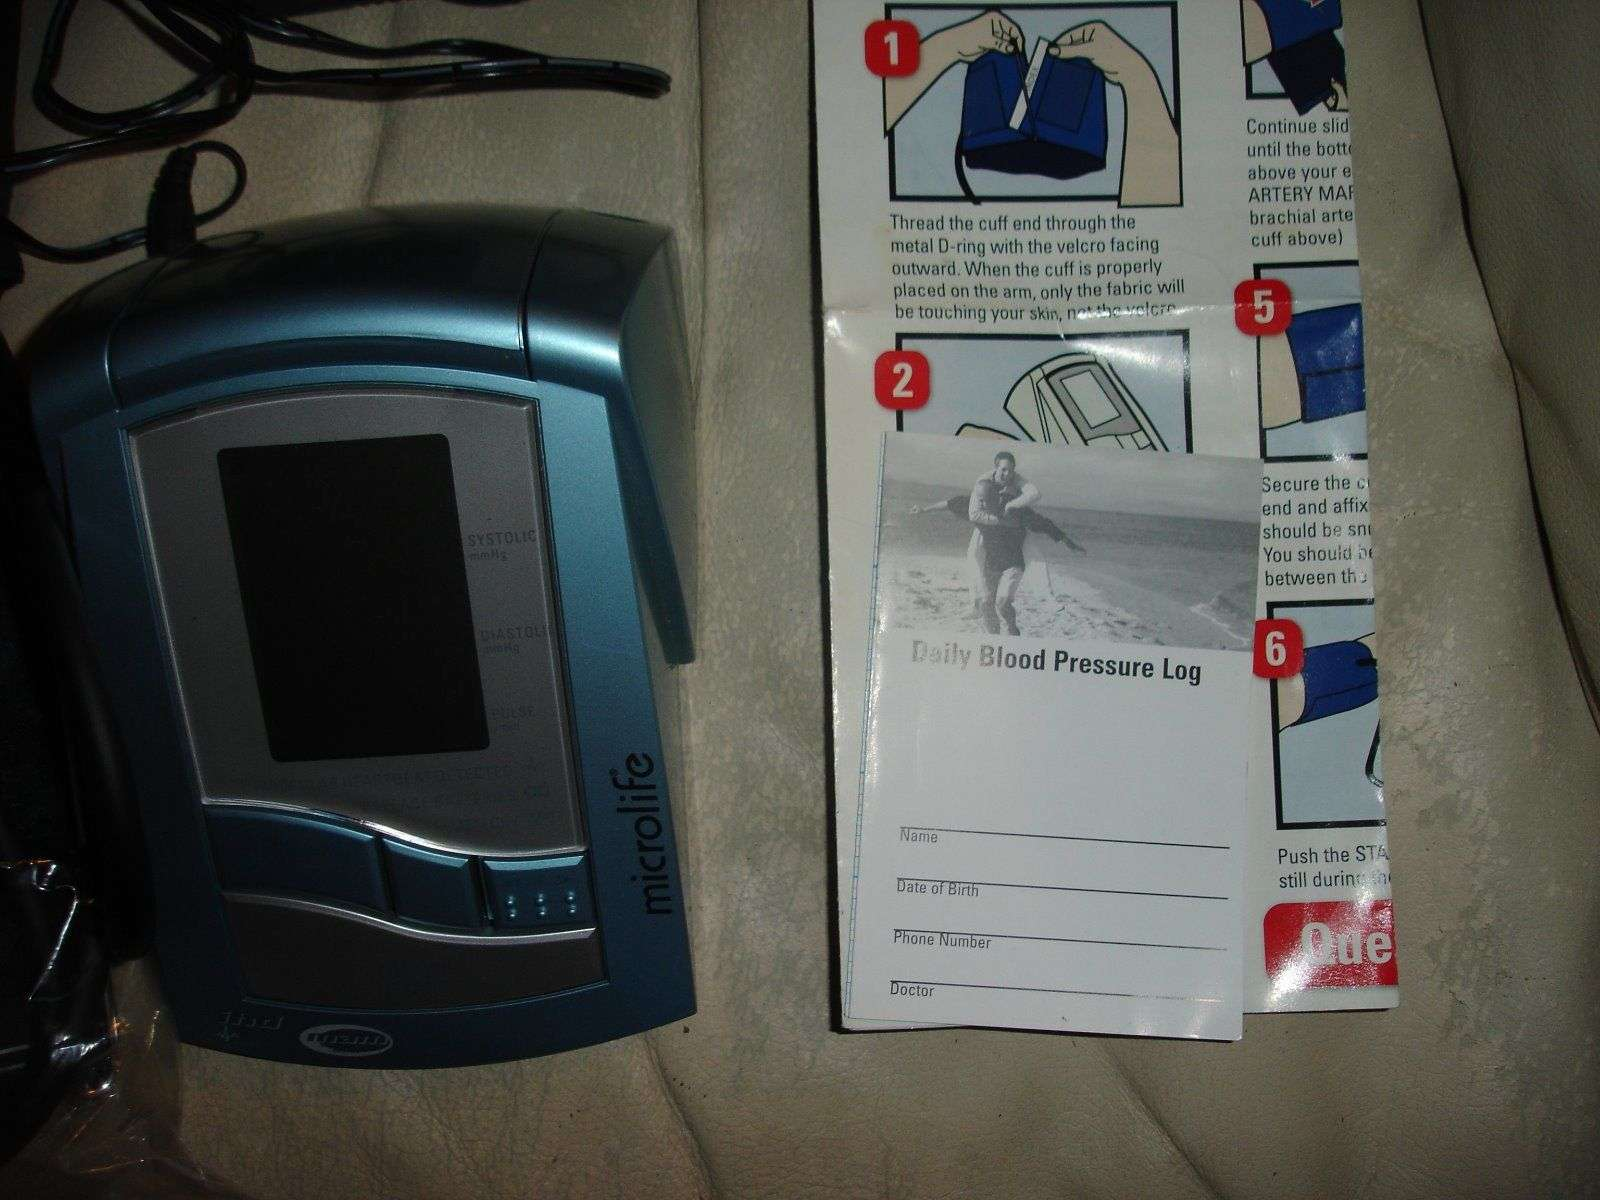 Cvs pharmacy blood pressure monitor manual